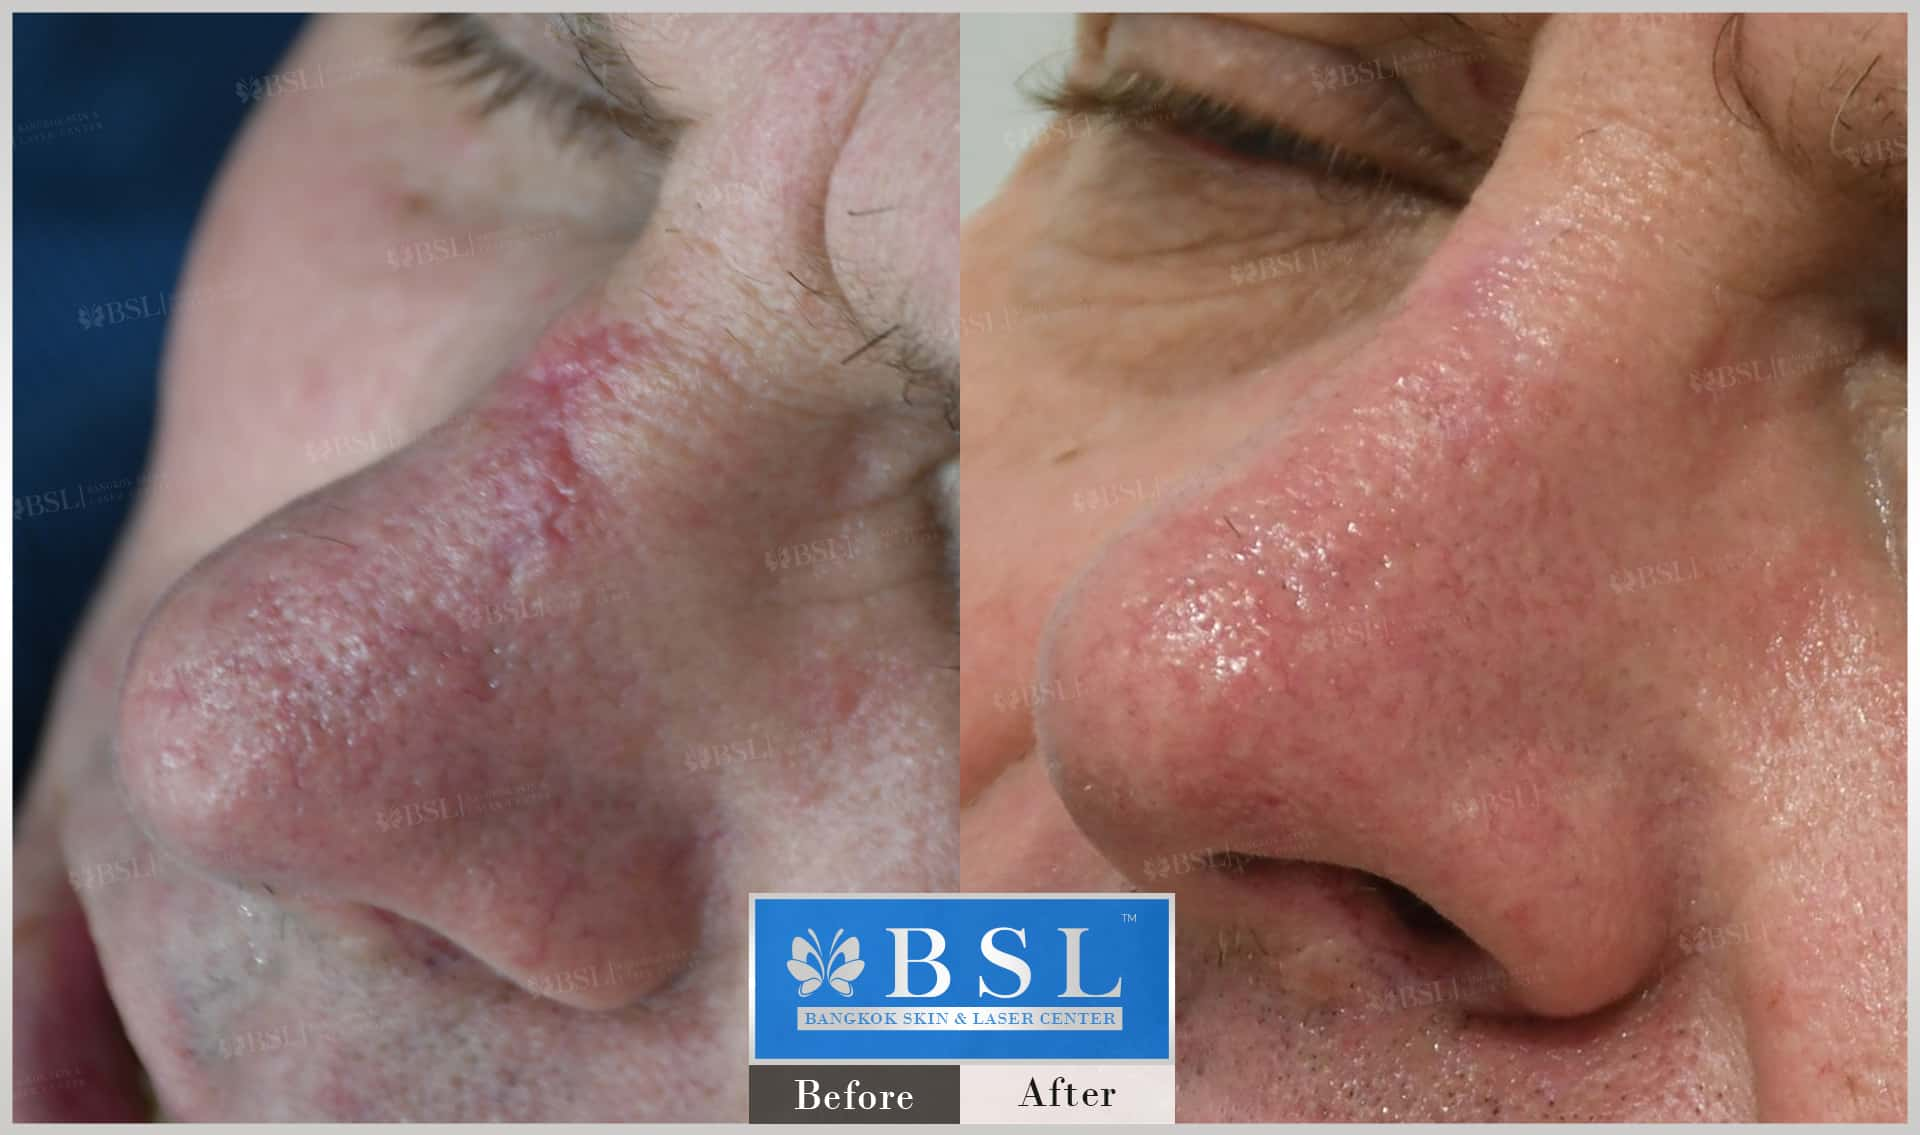 before-after-results-scar-treatment-001